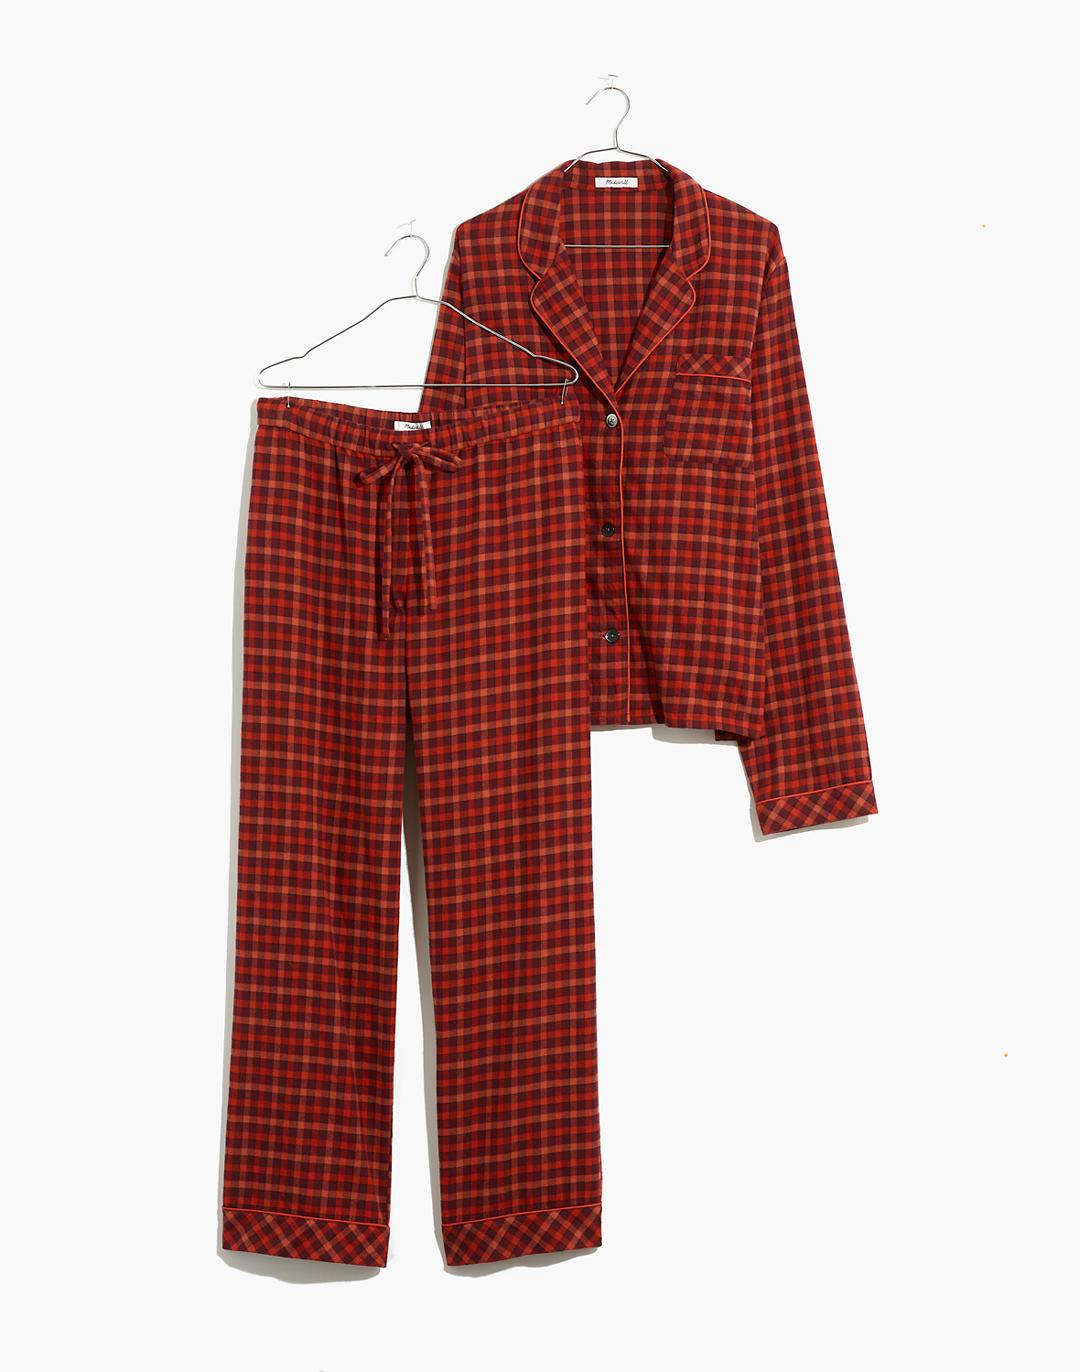 Flannel Bedtime Pajama Set in Plaid 3